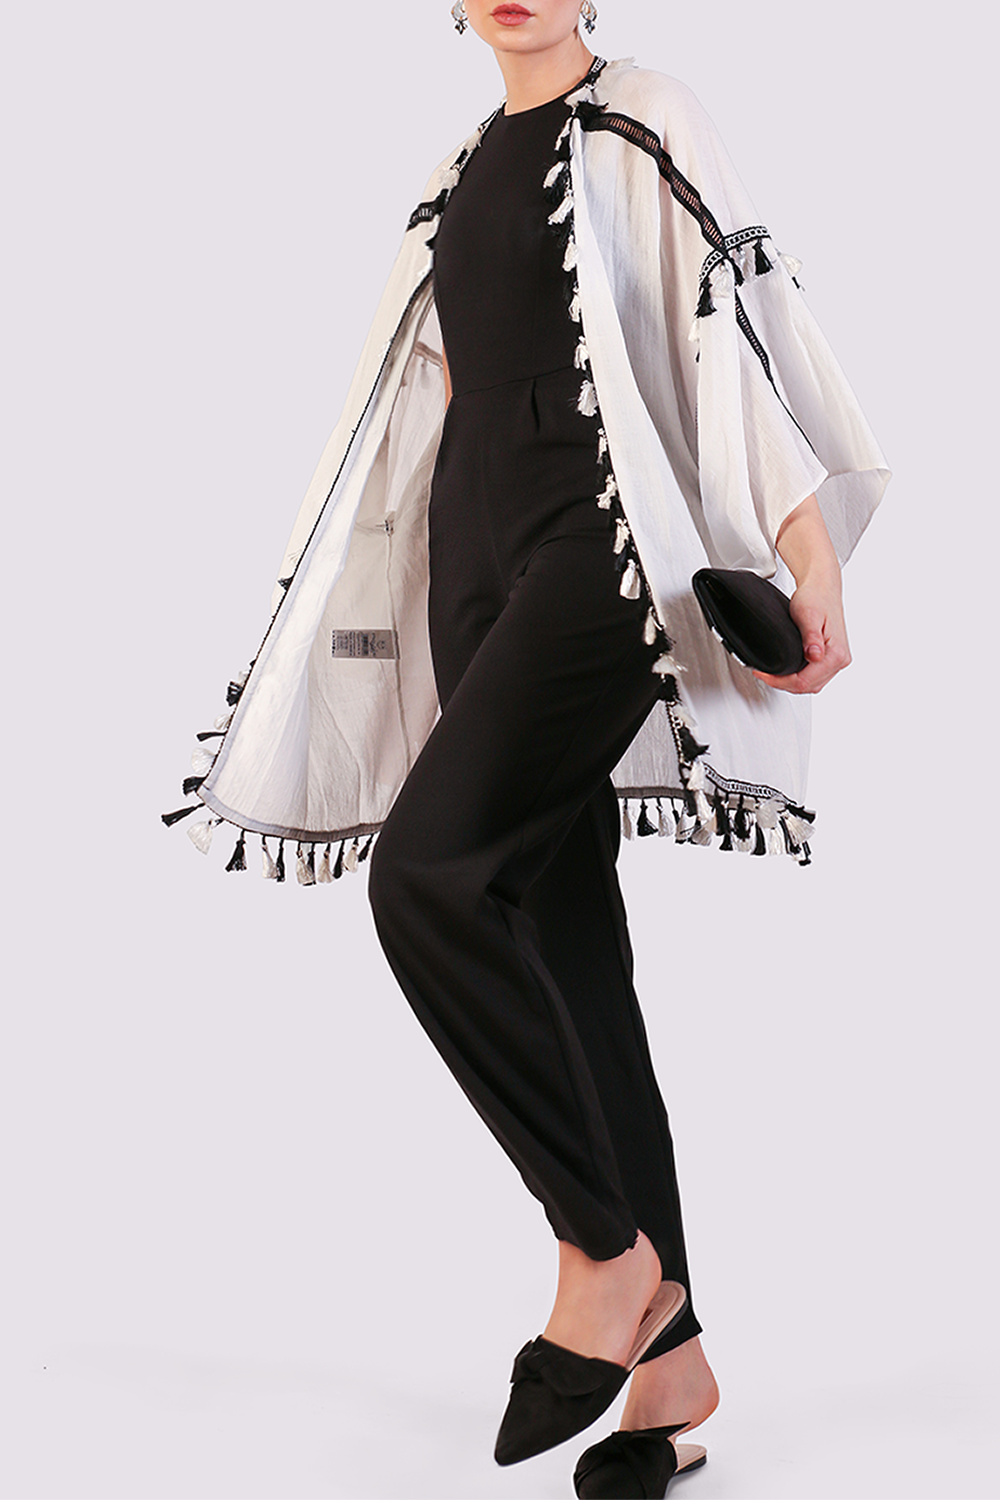 Moutaki white cardigan with black and white tassels